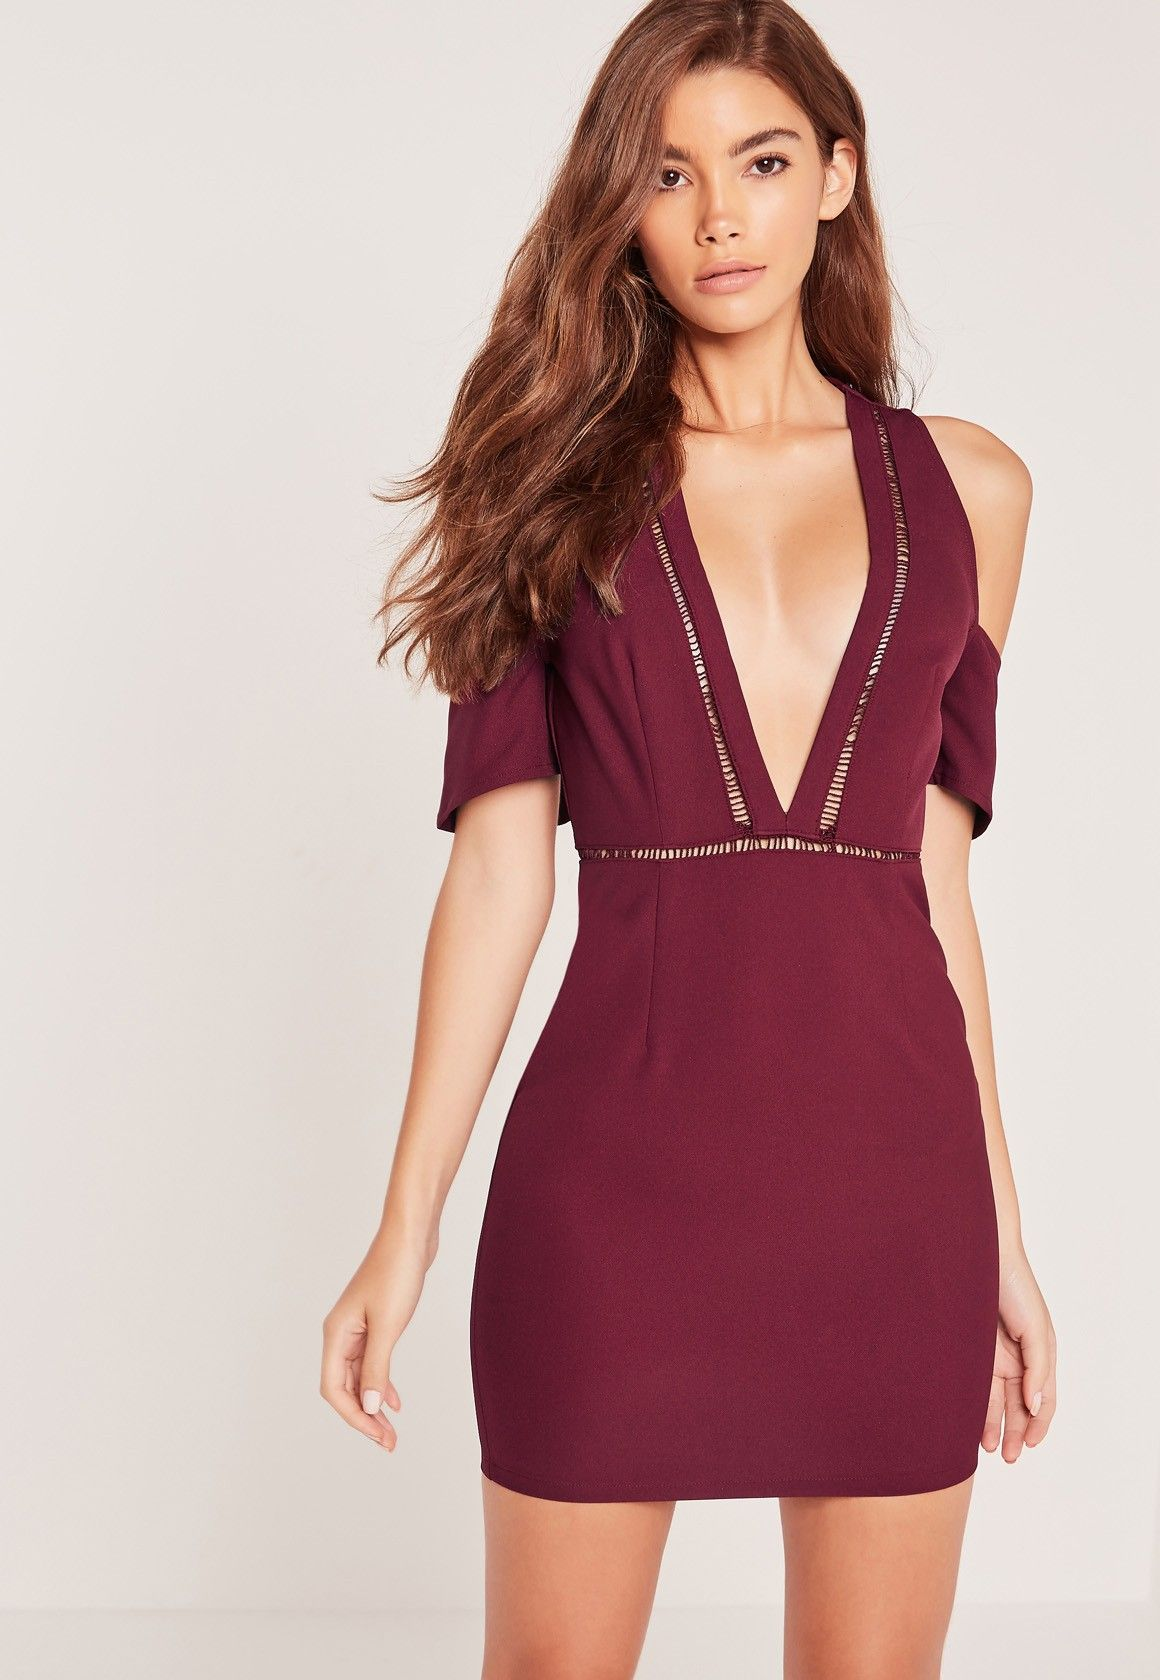 Into your fashion game with amazing party dresses cocktail dresses day - Unleash Some Cold Play Into Your Night Game Featuring A Deep Burgundy Hue Sexy Sexy Cocktail Dresscocktail Party